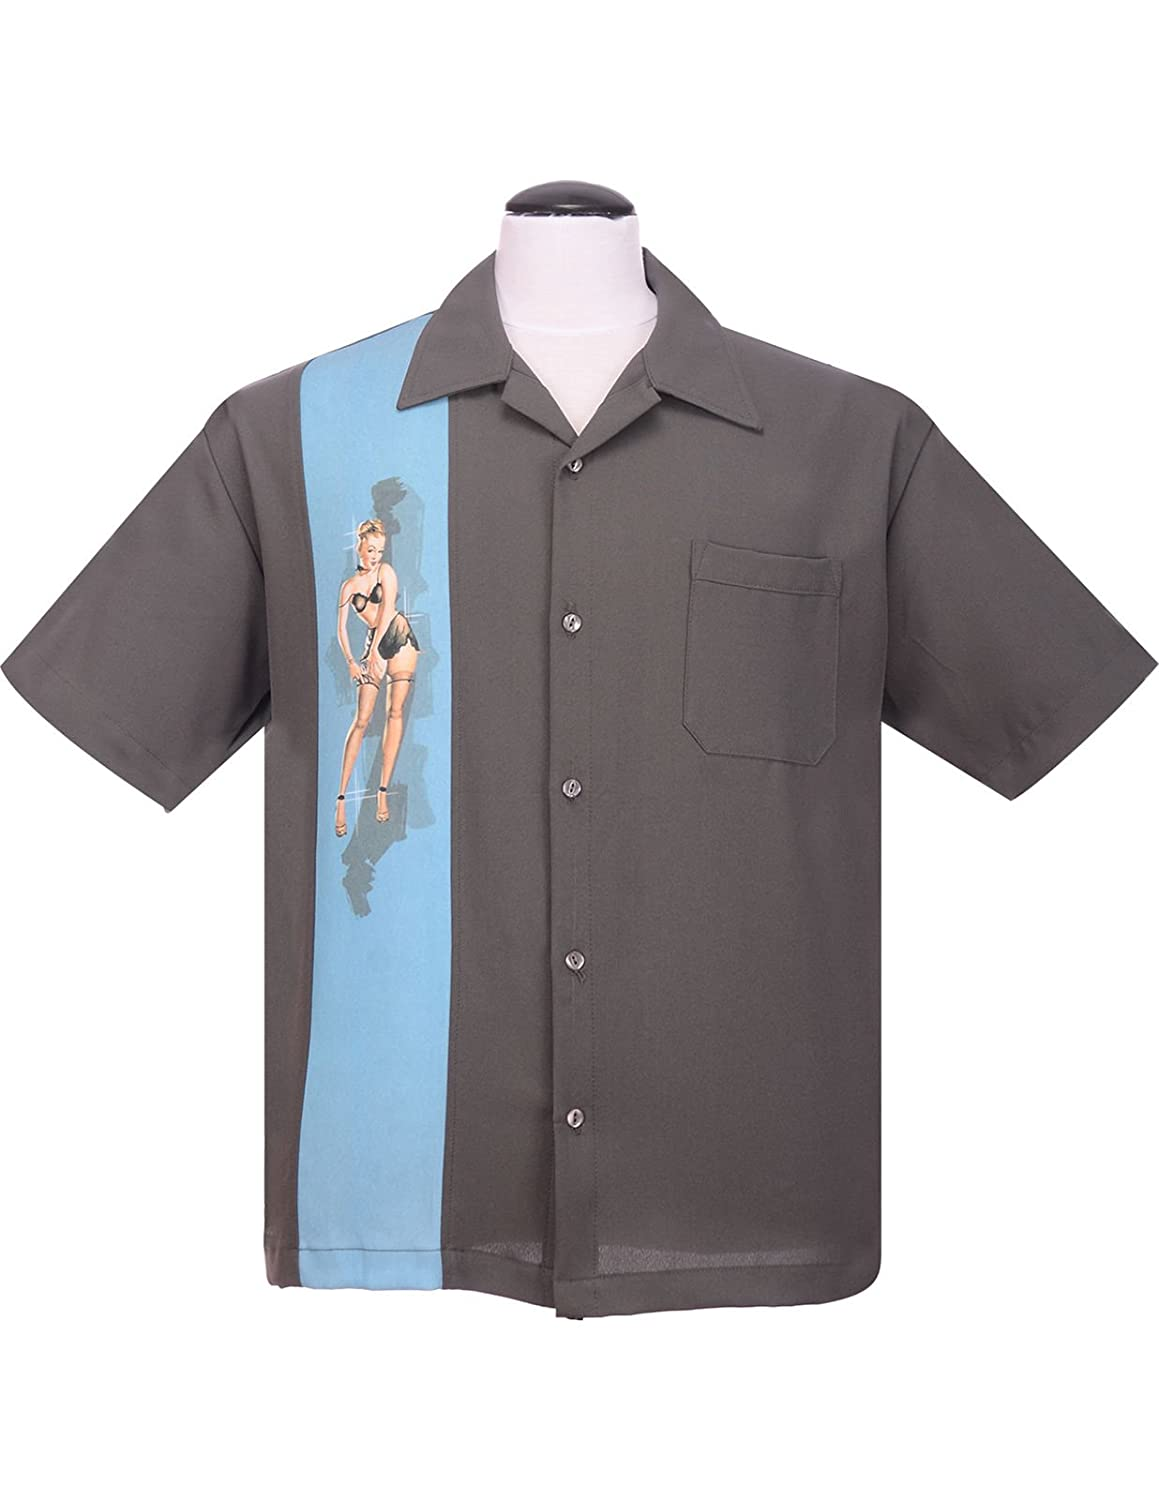 Steady Pinup Grey Girl Bowling Camp Lounge Shirt Retro 1950s 50s One Panel